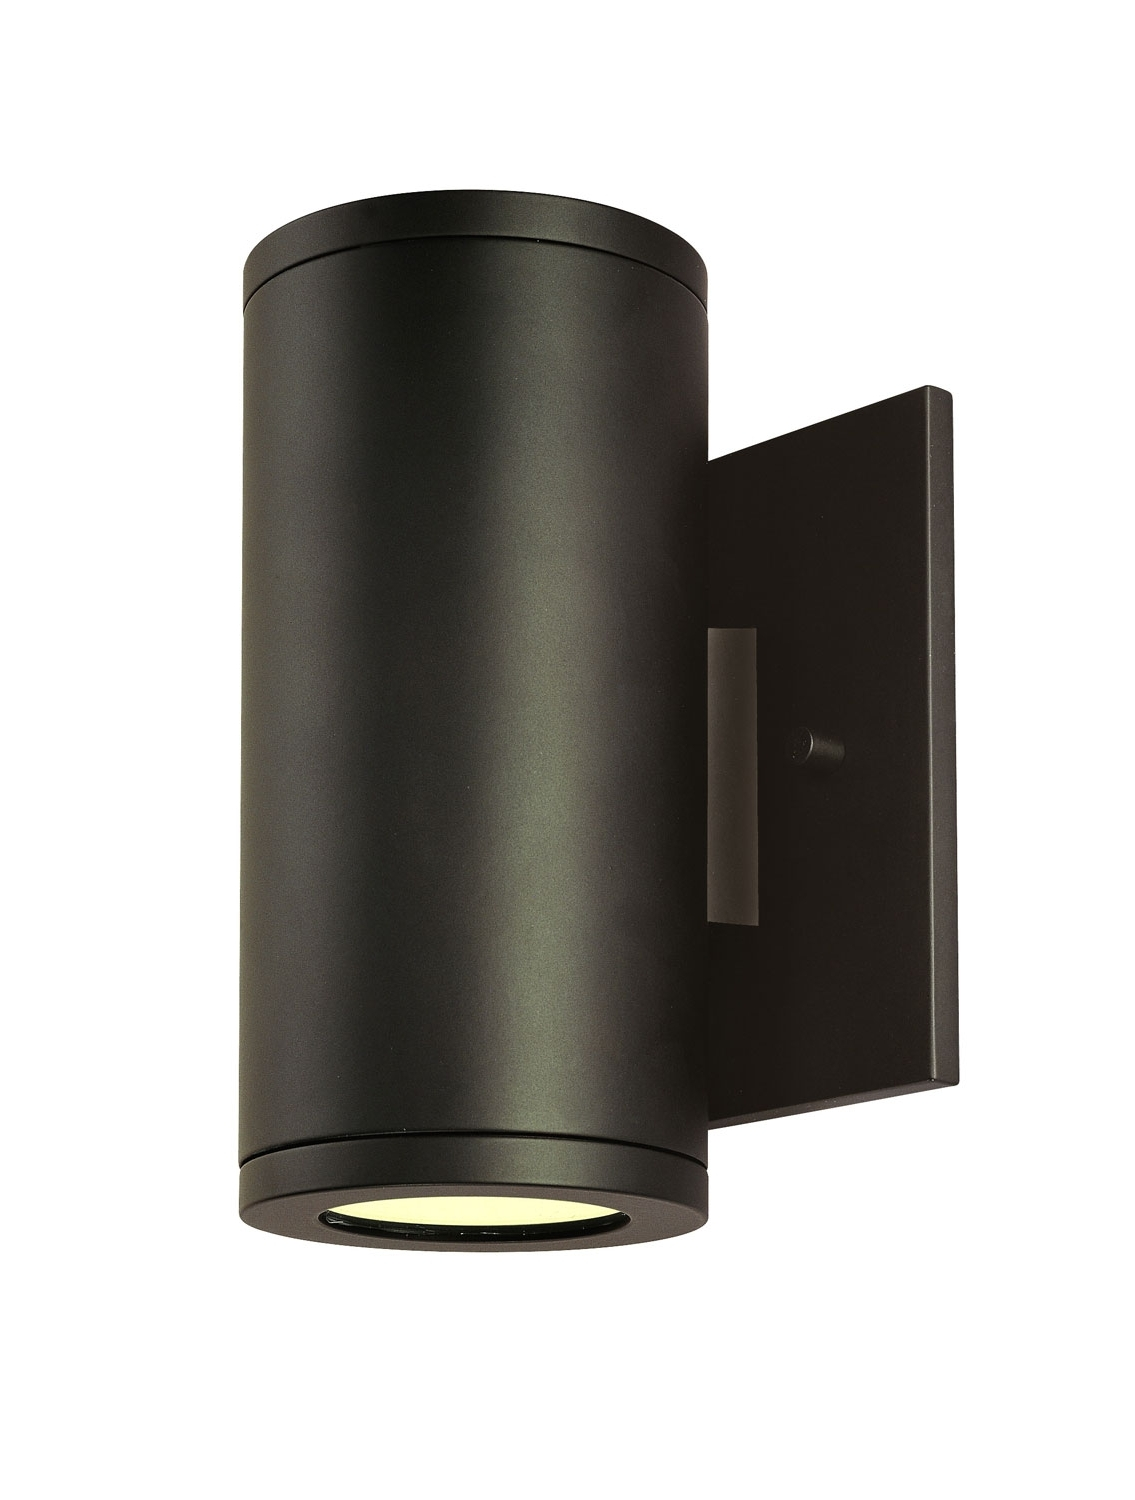 Latest Light : Black Wall Mounted Outdoor Lights White Simple Ideas Classic Intended For Outdoor Lighting And Light Fixtures (View 17 of 20)